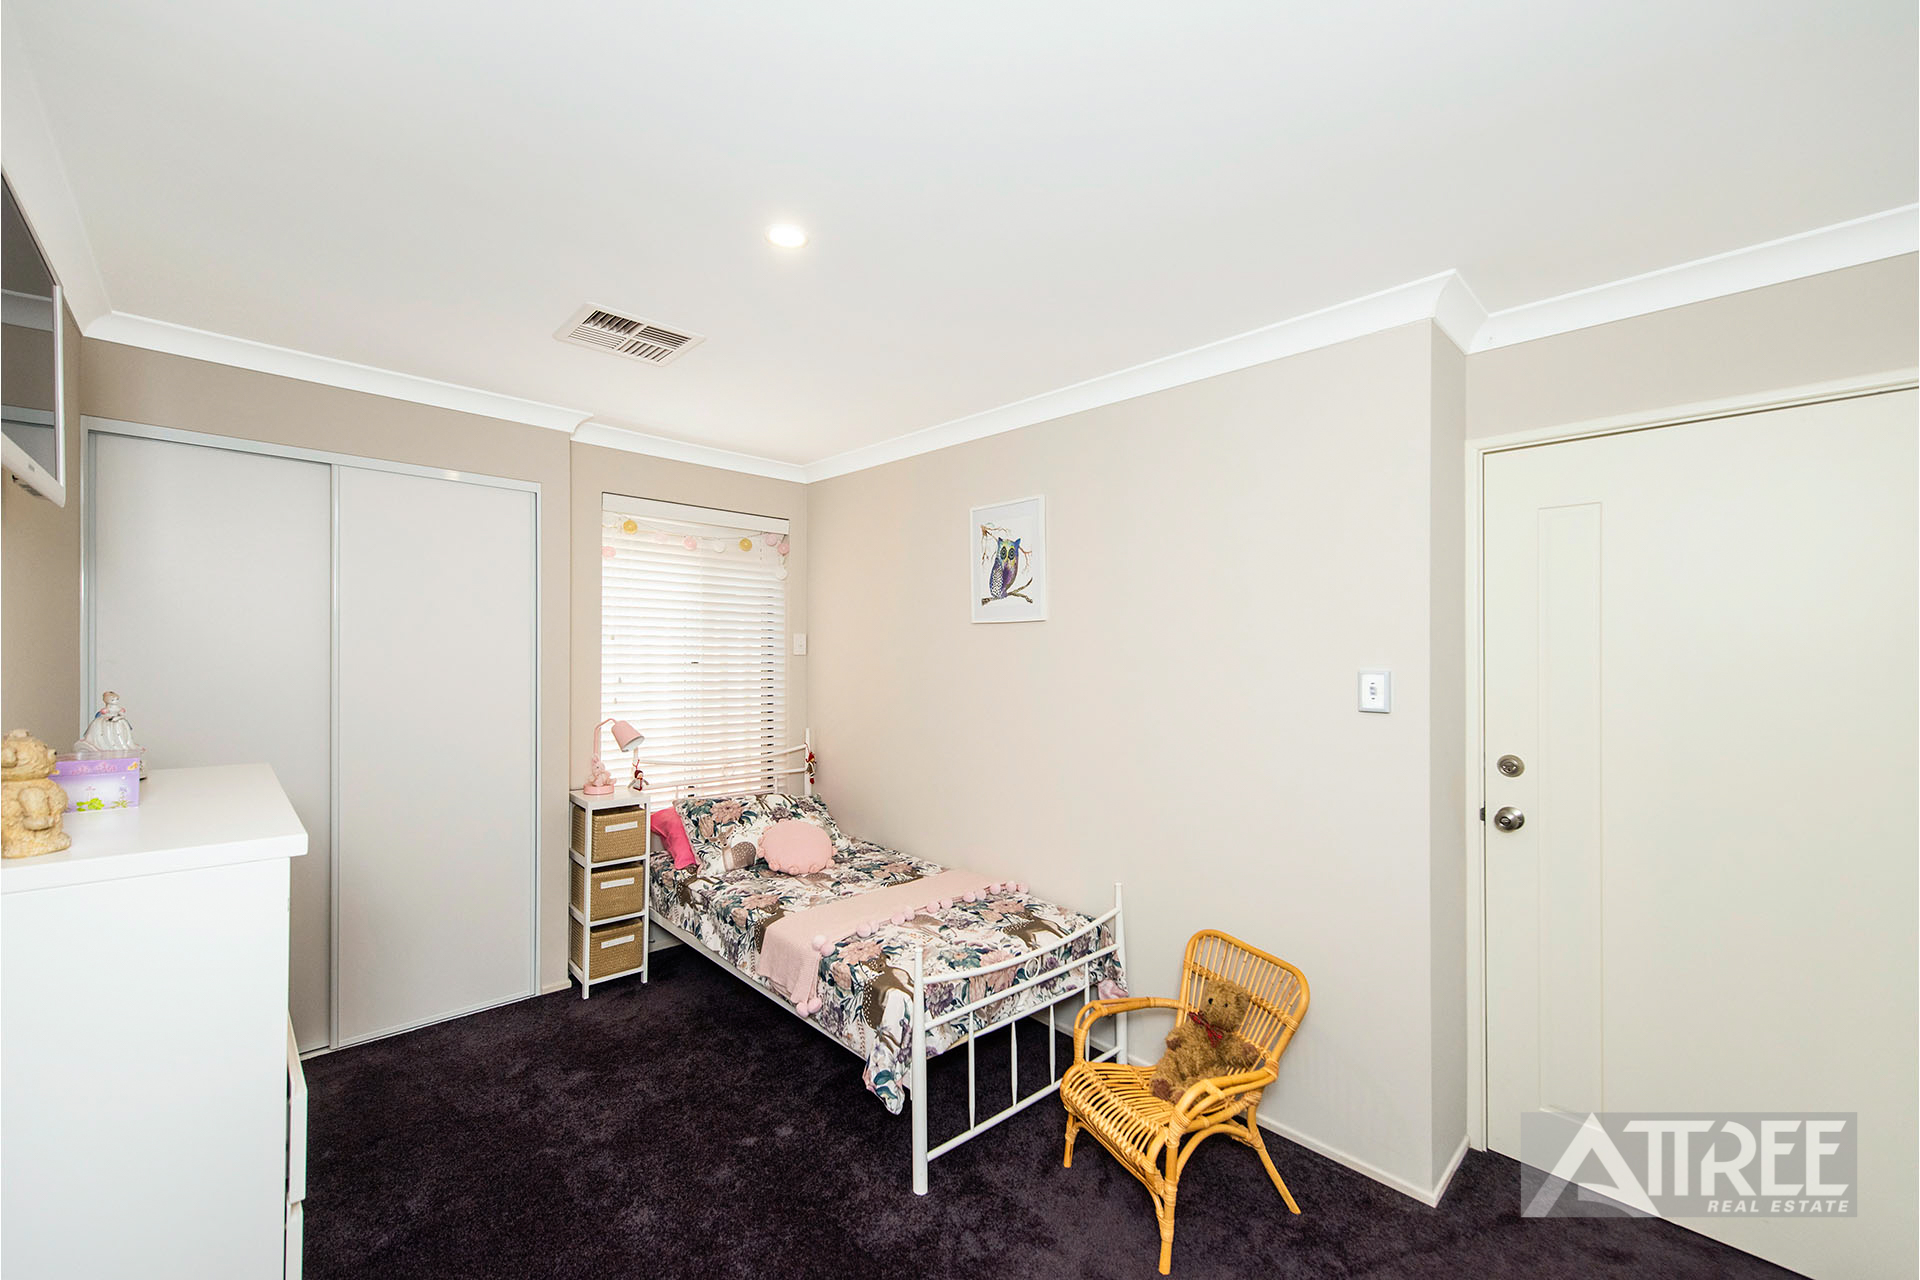 Property for sale in CANNING VALE, 54 Excelsior Drive : Attree Real Estate